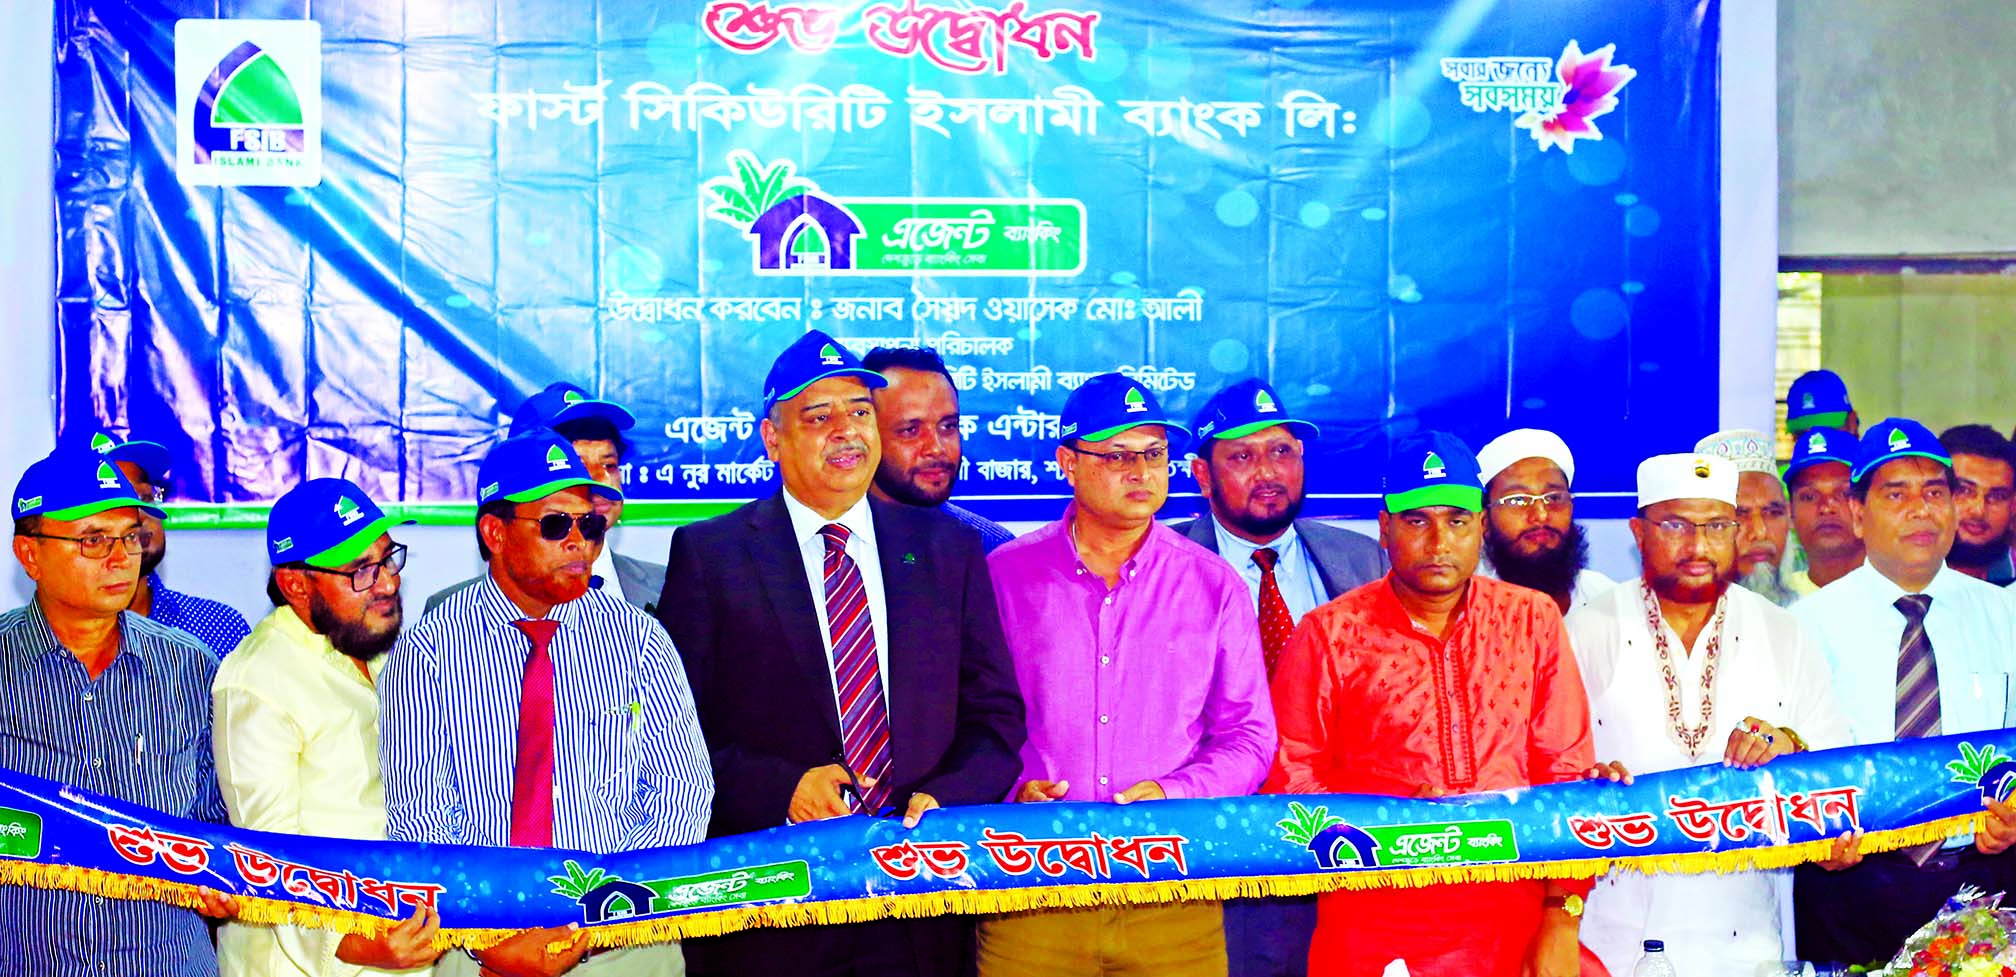 Syed Waseque Md Ali, Managing Director of First Security Islami Bank Limited, Inaugurating its Agent Banking Outlet at Vetkhali Bazar, Shyamnagar in Satkhira on Tuesday. Md. Mustafa Khair, DMD, Md. Abdur Rashid, Khulna Zonal Head, Ali Nahid Khan, Head of Alternative Delivery Channel Division, Md. Faridur Rahman Jalal, VP of Agent Banking & Mobile Banking of the bank and local elites were also present.